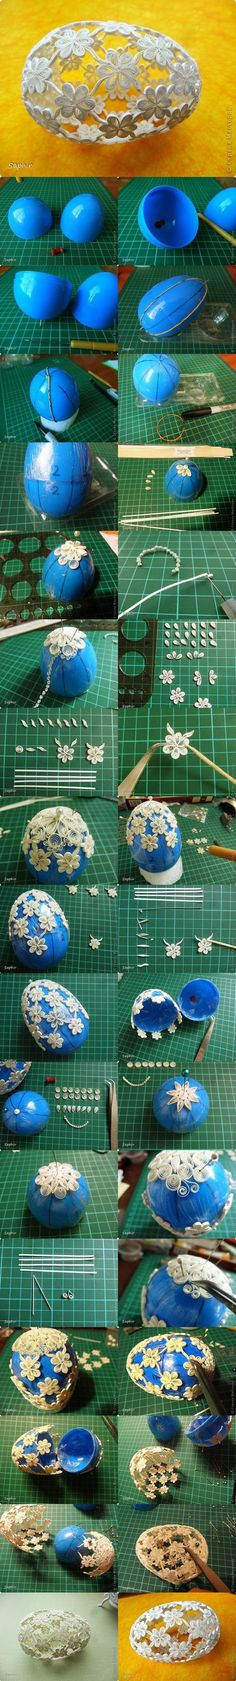 I'll never do this but I am fascinated by it: DIY Quilling Easter Egg 2